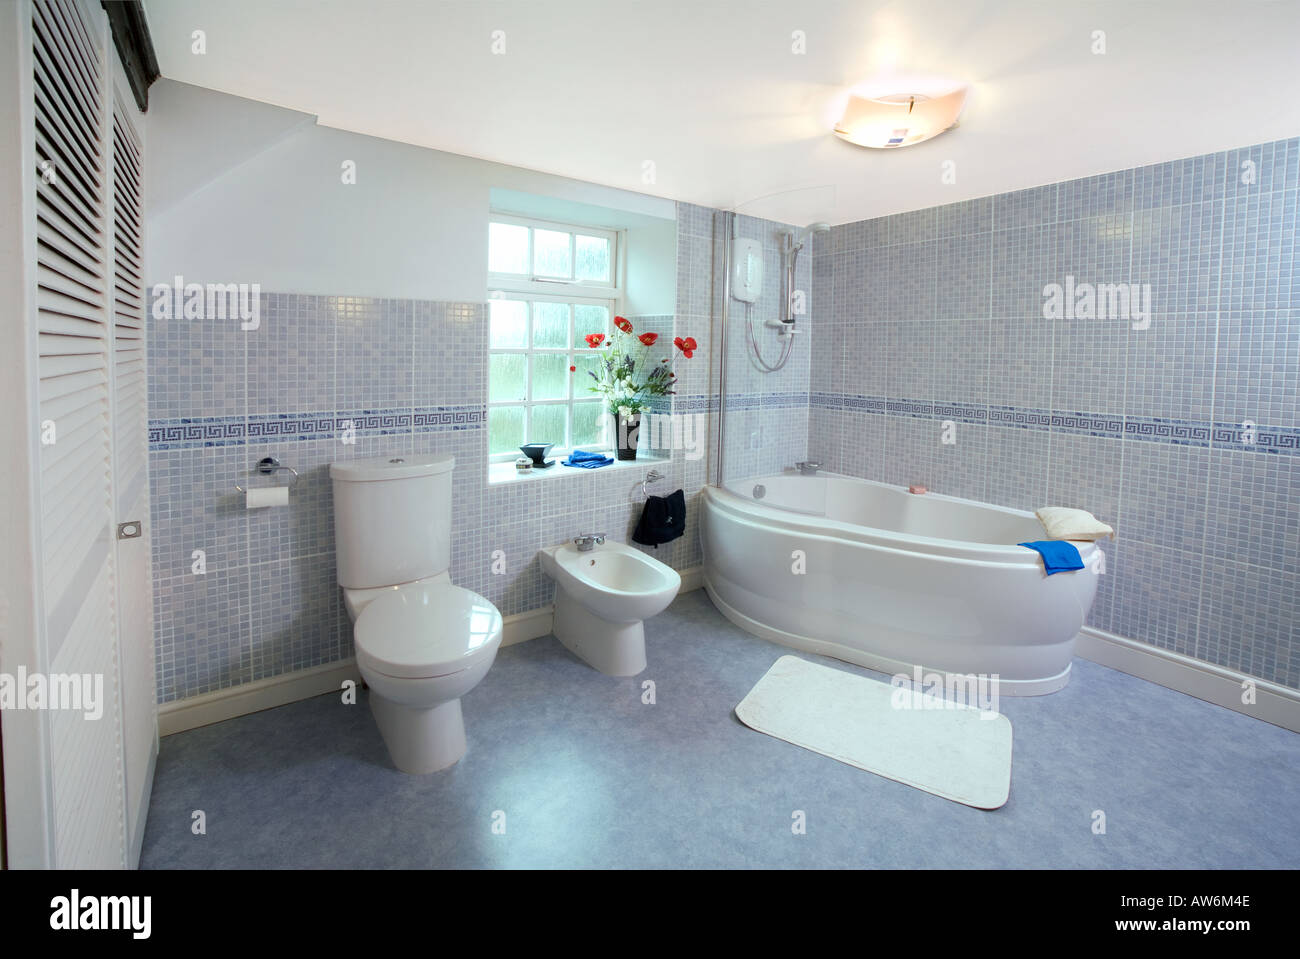 Bath Tap Stock Photos & Bath Tap Stock Images - Alamy